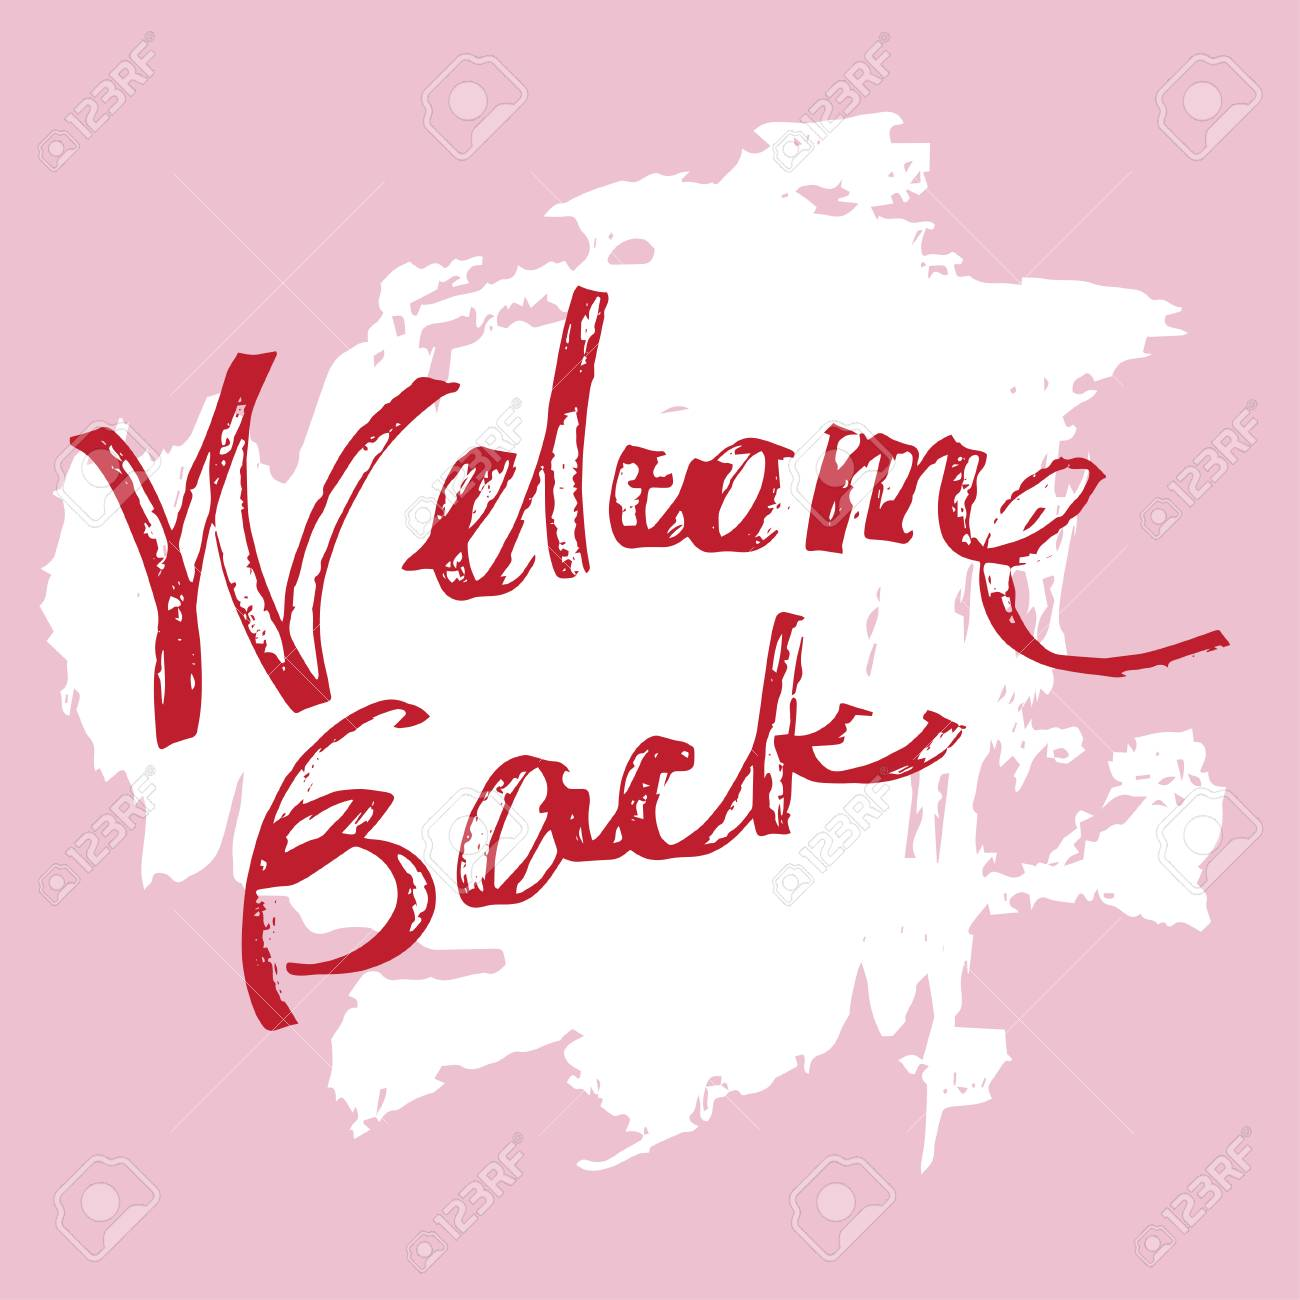 Welcome back grunge greeting card royalty free cliparts vectors vector welcome back grunge greeting card m4hsunfo